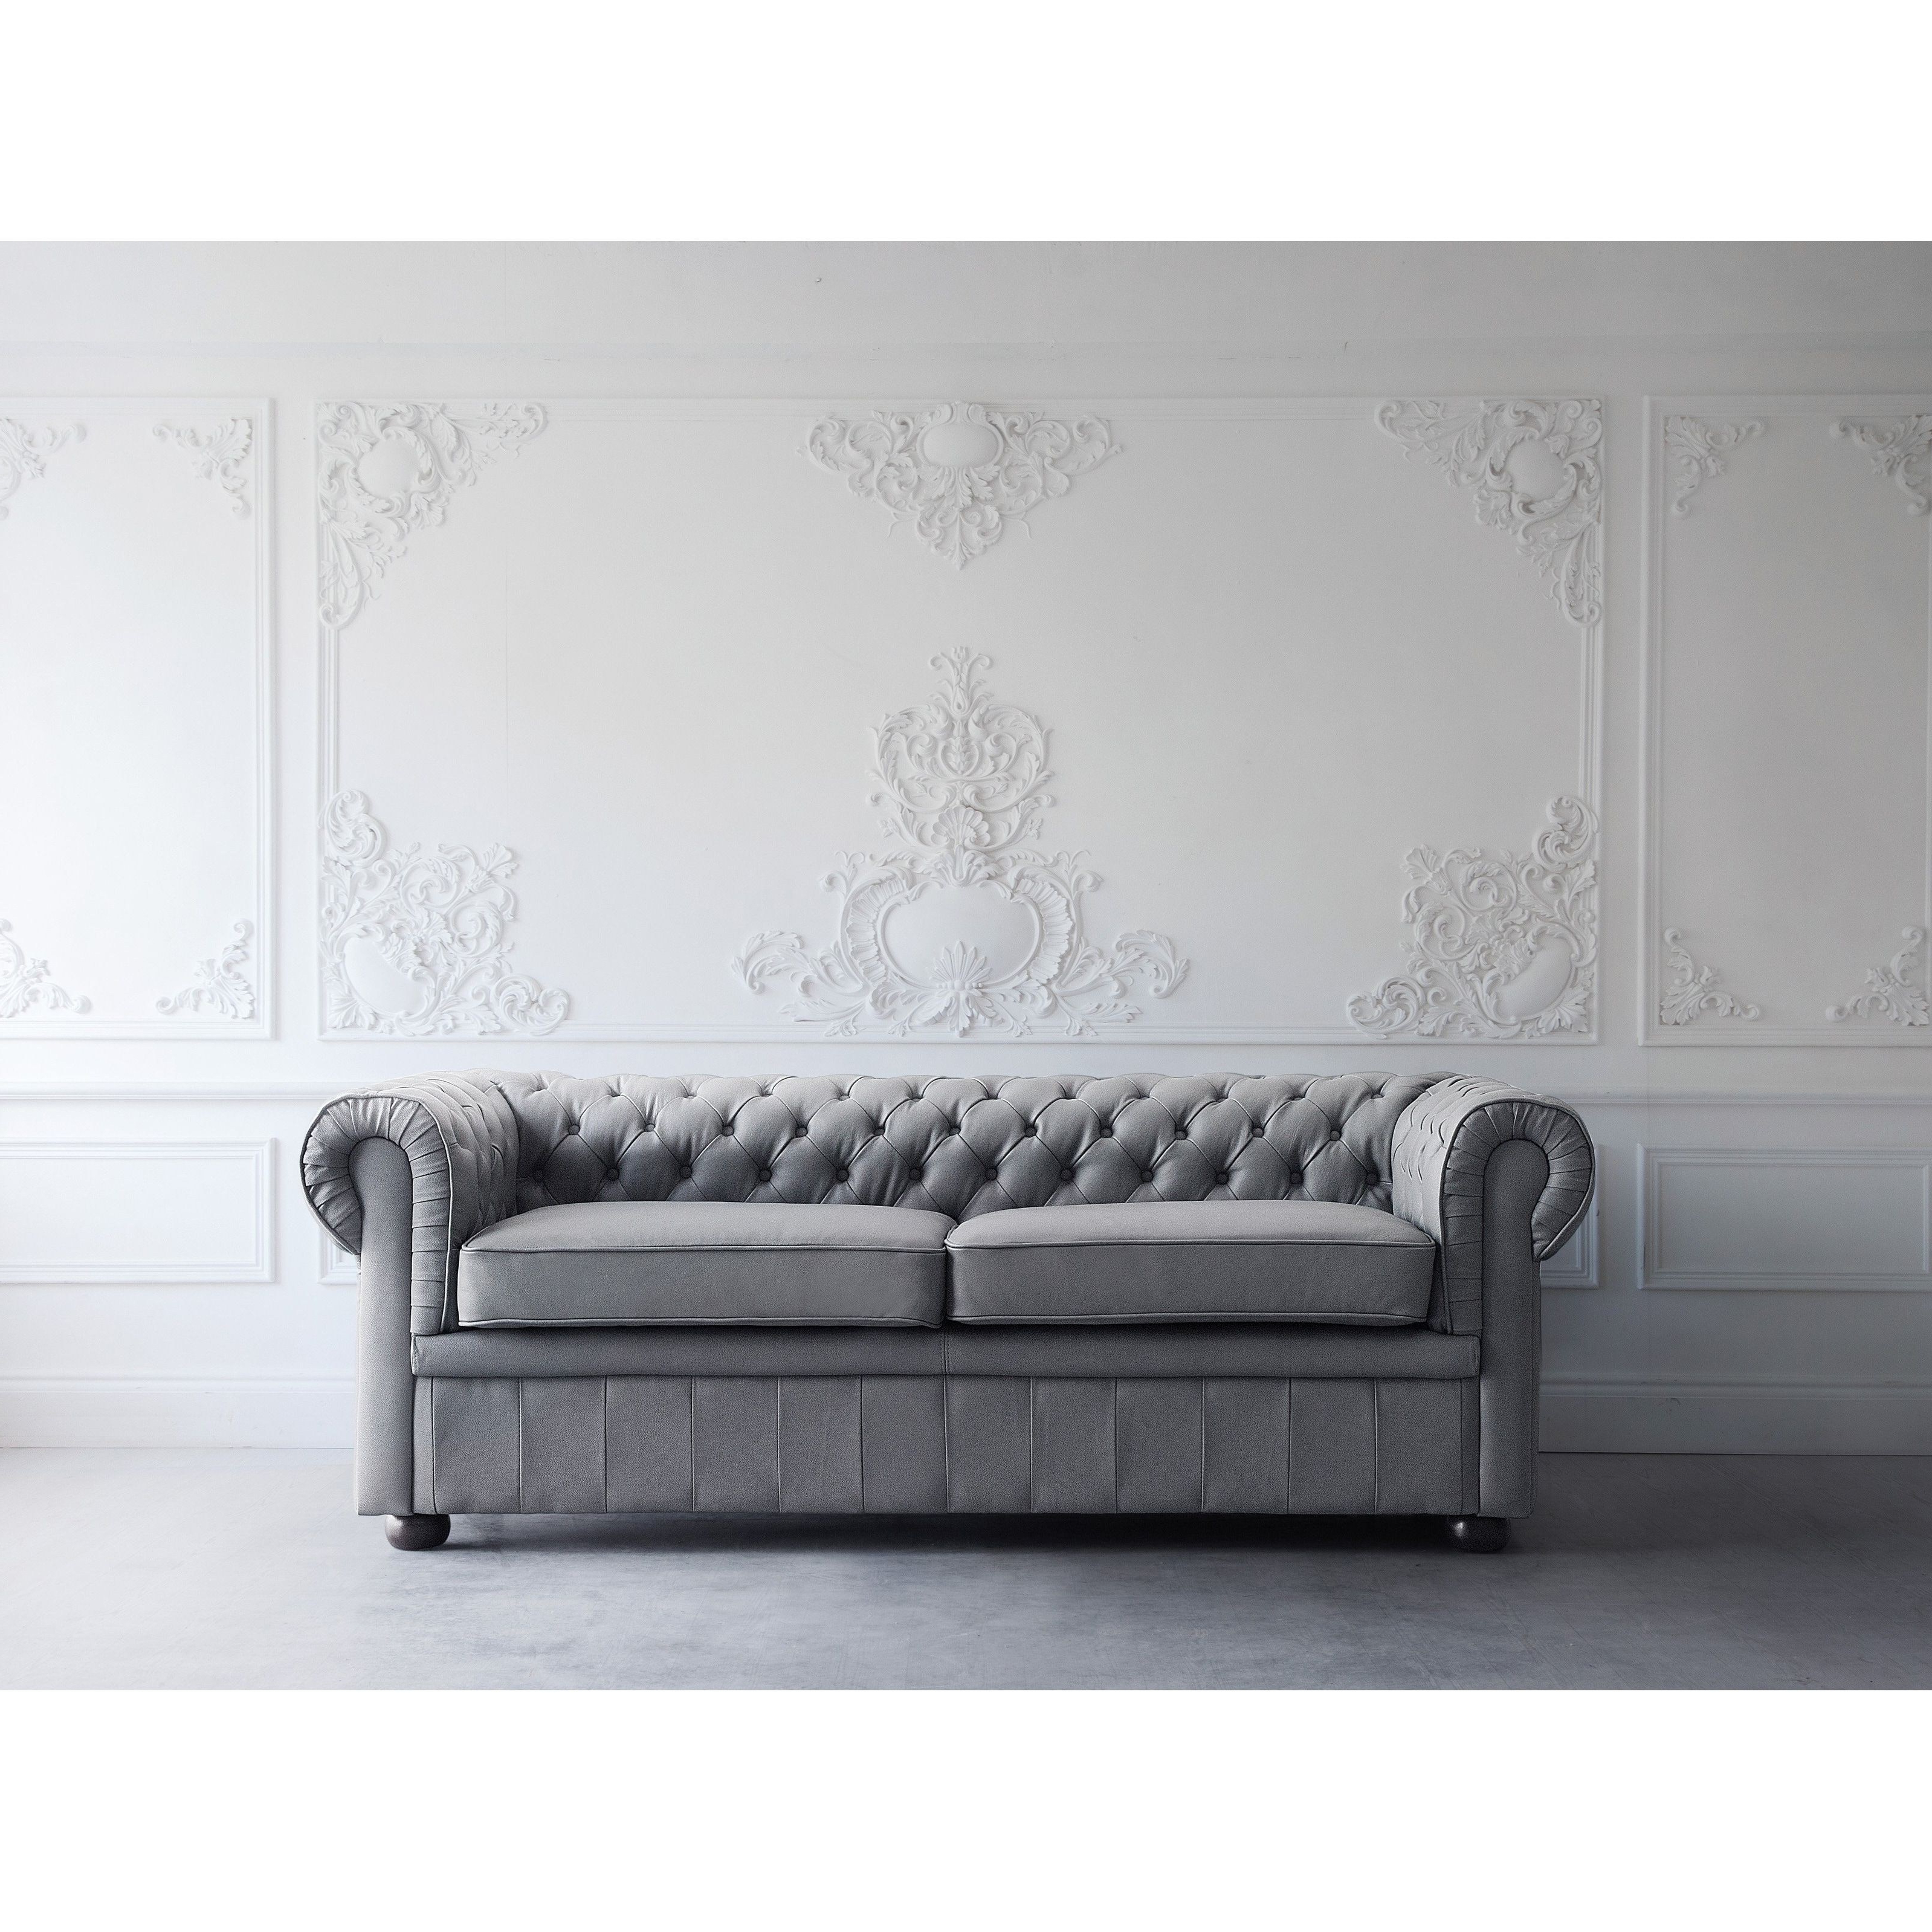 Stunning Augustina Lear Sofa Lear Sofas Couches Grey Lear Sofa Grey Intended For Trendy Clyde Grey Leather 3 Piece Power Reclining Sectionals With Pwr Hdrst & Usb (View 4 of 20)